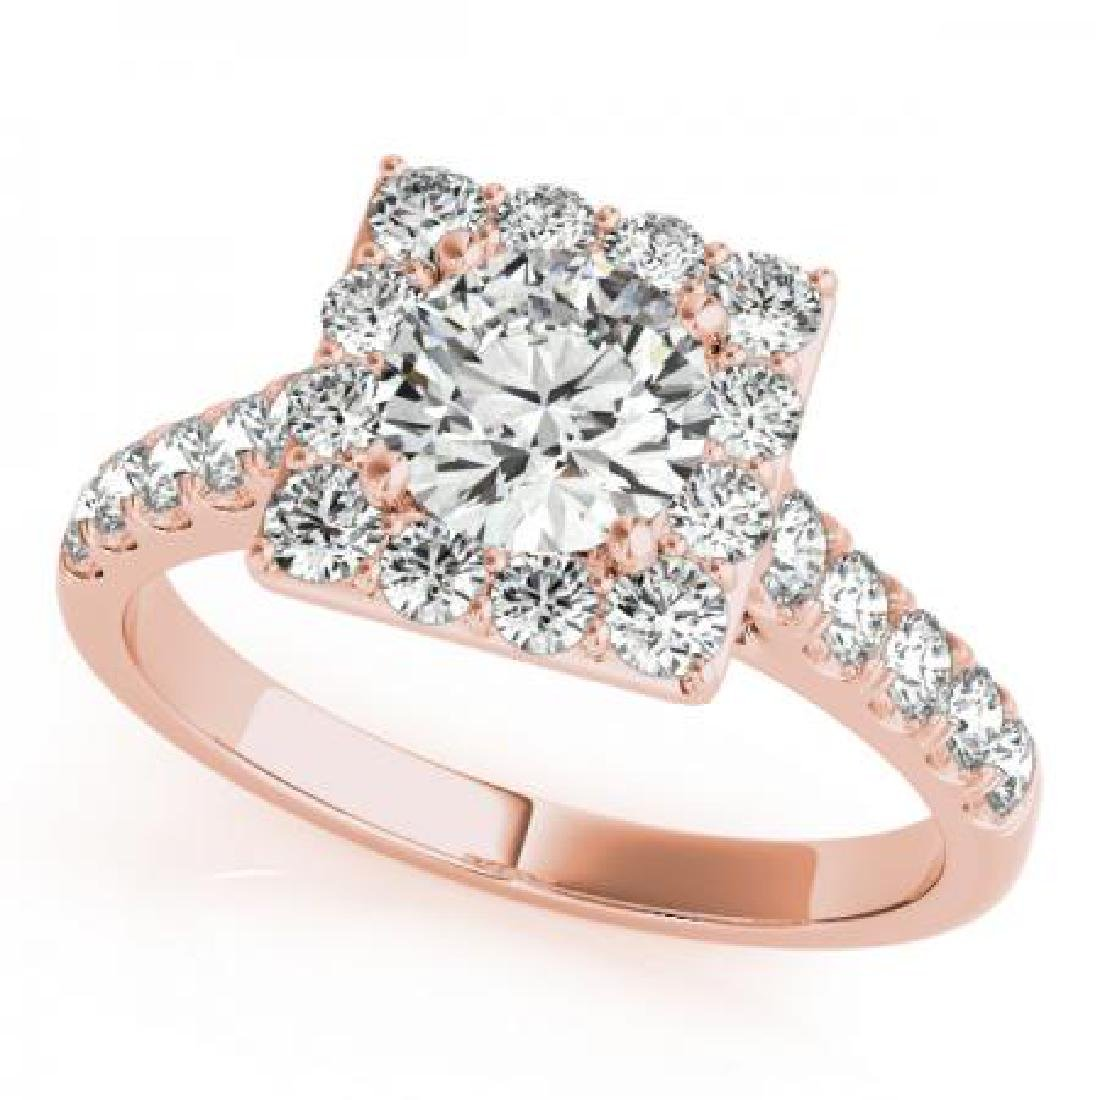 CERTIFIED 14KT ROSE GOLD 1.65 CT G-H/VS-SI1 DIAMOND HAL